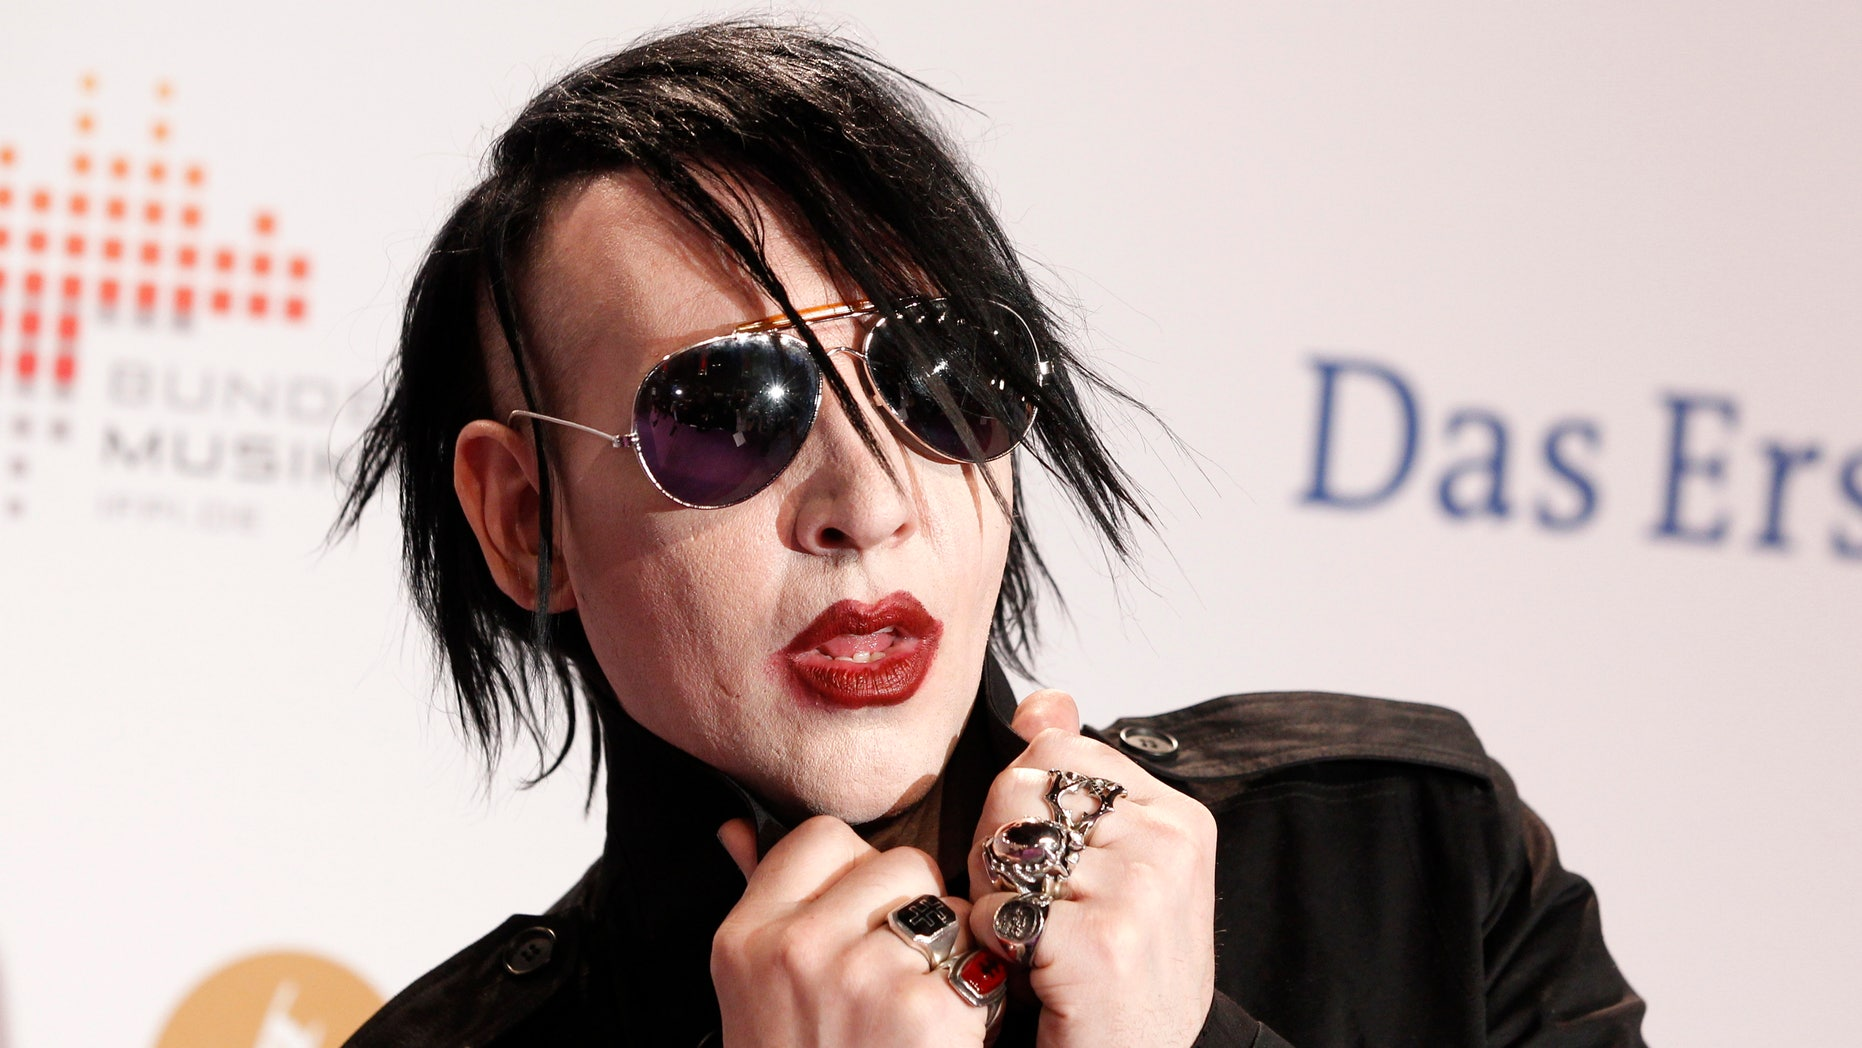 Singer Marilyn Manson arrives on the red carpet for the Echo Music Awards ceremony in Berlin March 22, 2012.